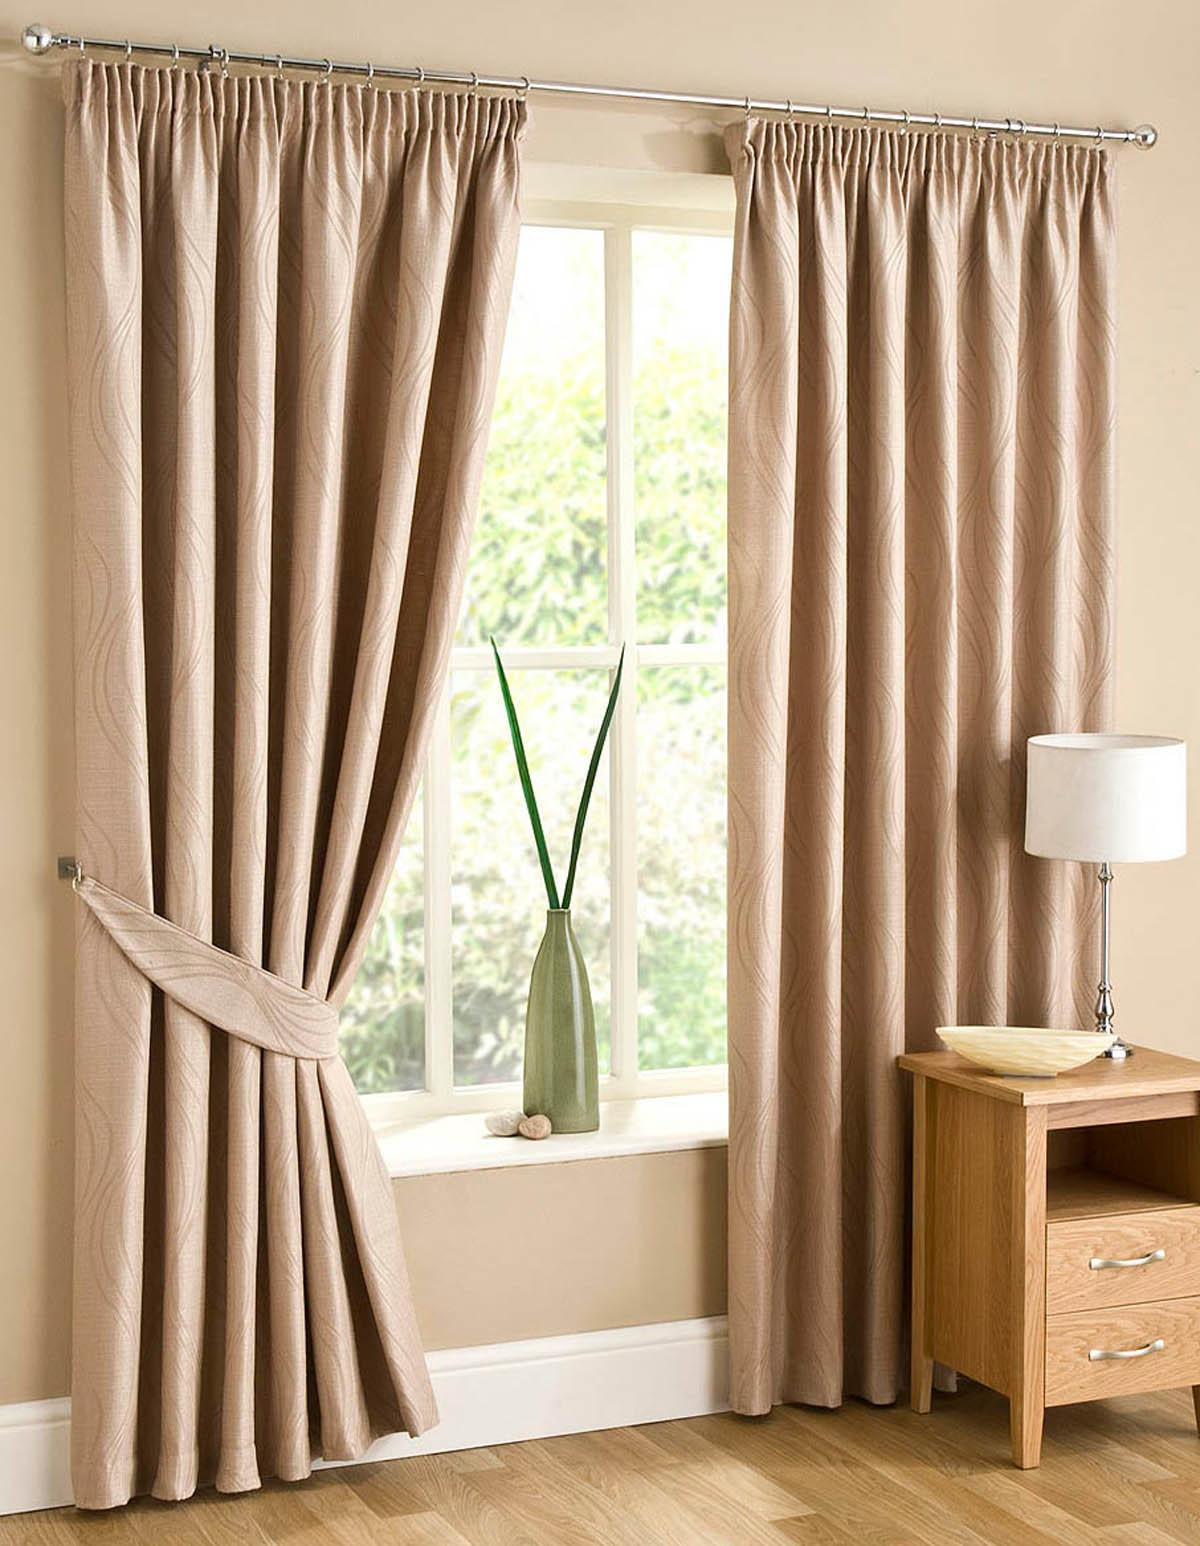 Stockists of Sand Swirl Lined Ready Made Curtains